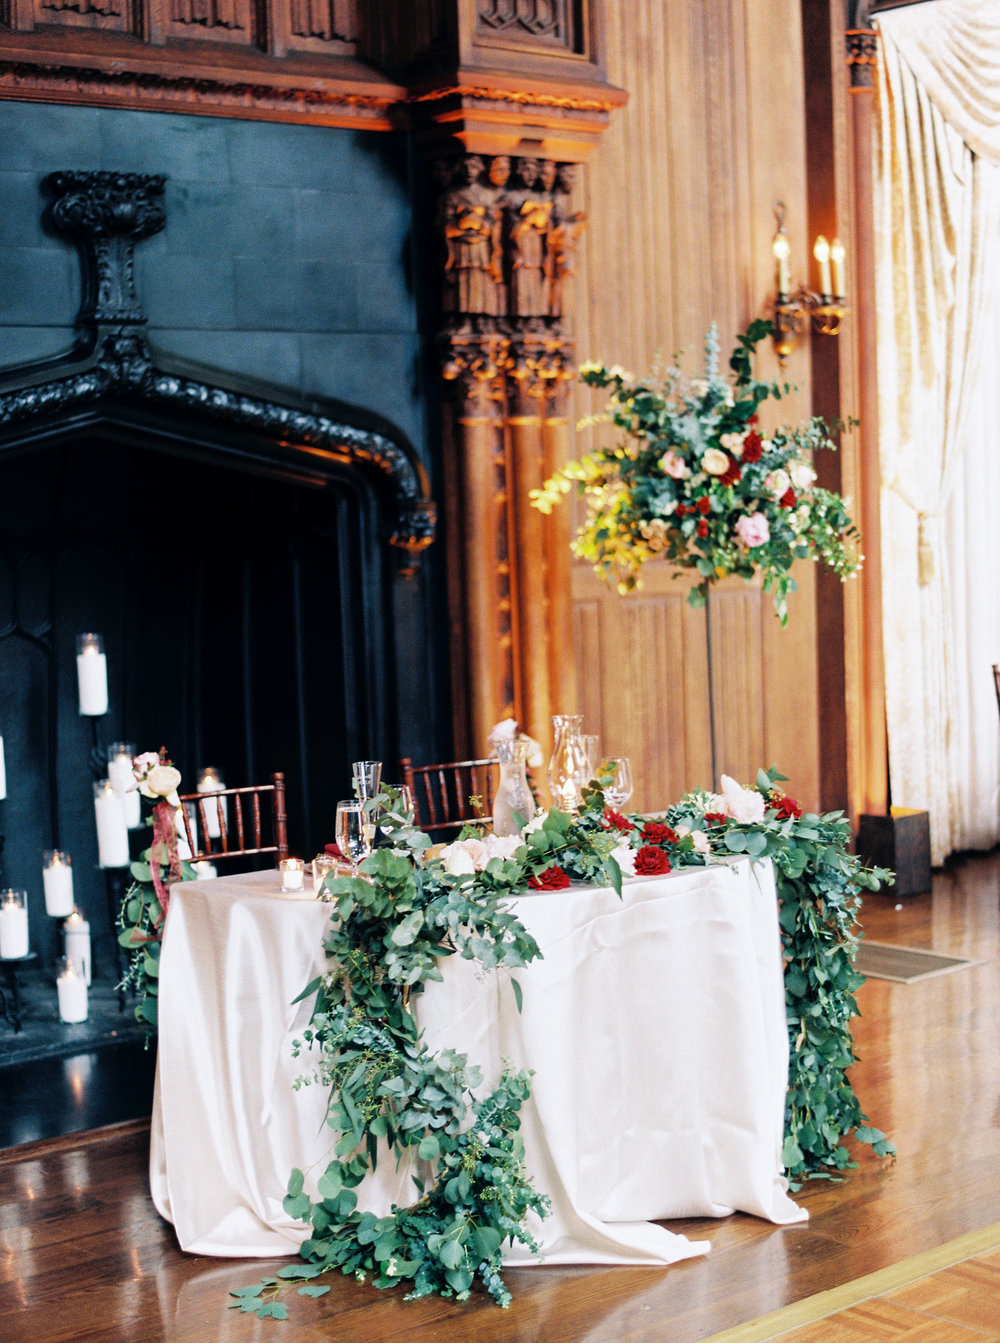 spring-inspired-wedding-at-kohl-mansion-burlingame-california-131.jpg